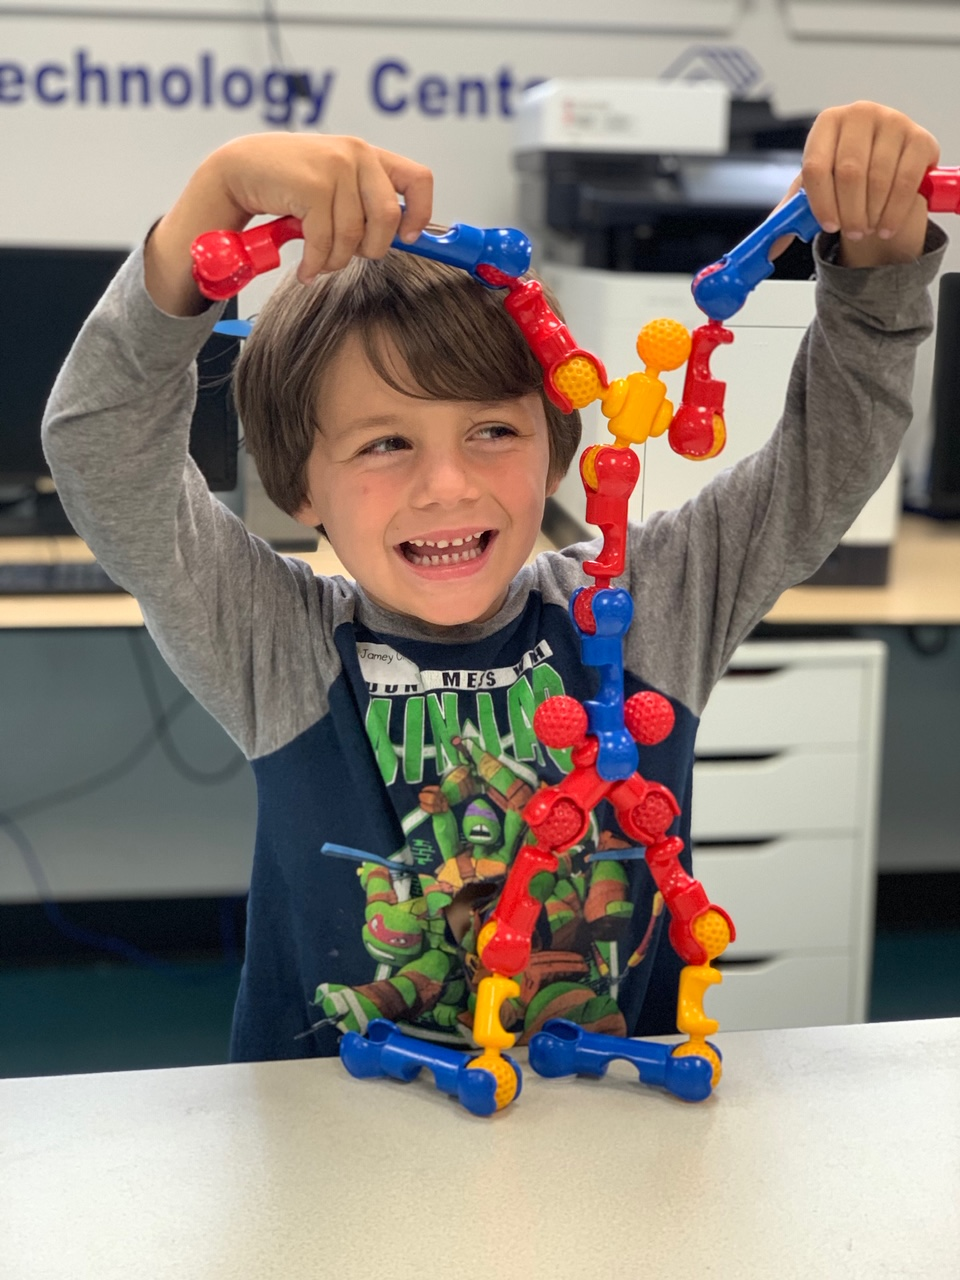 boy playing with snap together toys in Canyon Enrichment Center preschool room